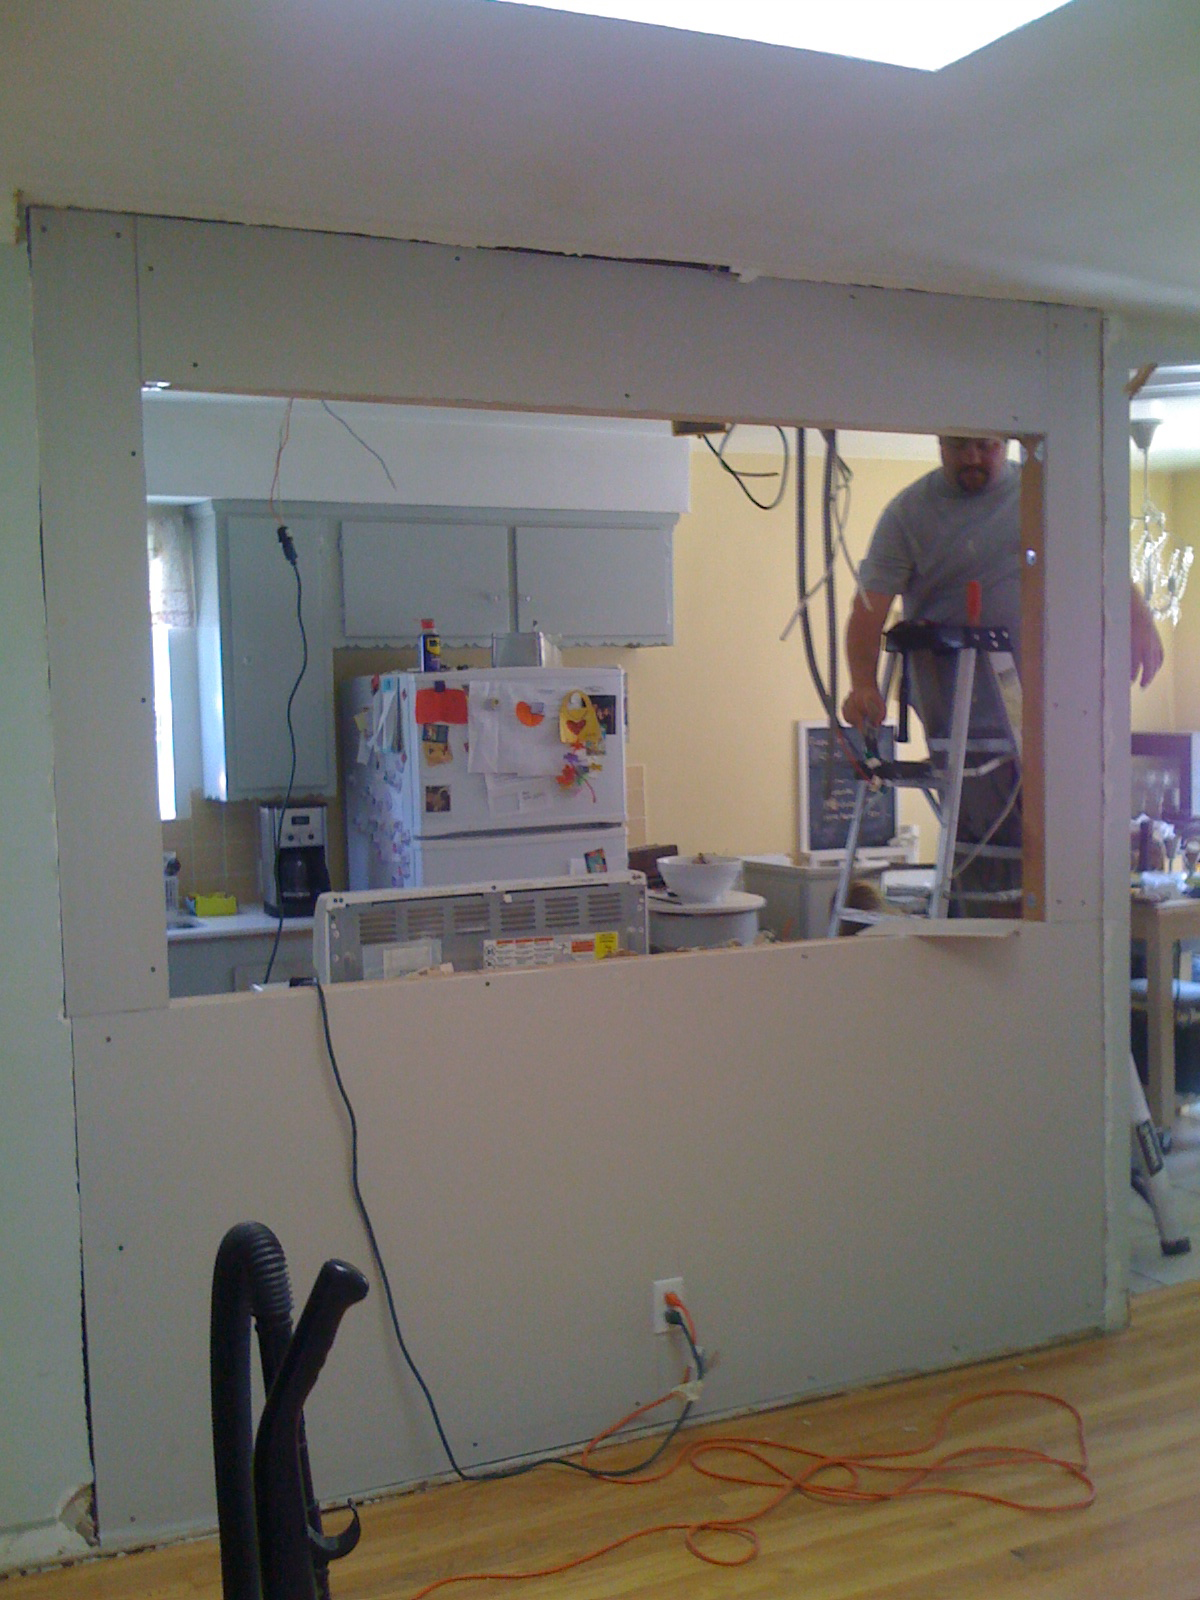 Knocking Out A Wall To Install A Bar My Fifties Kitchen Redo